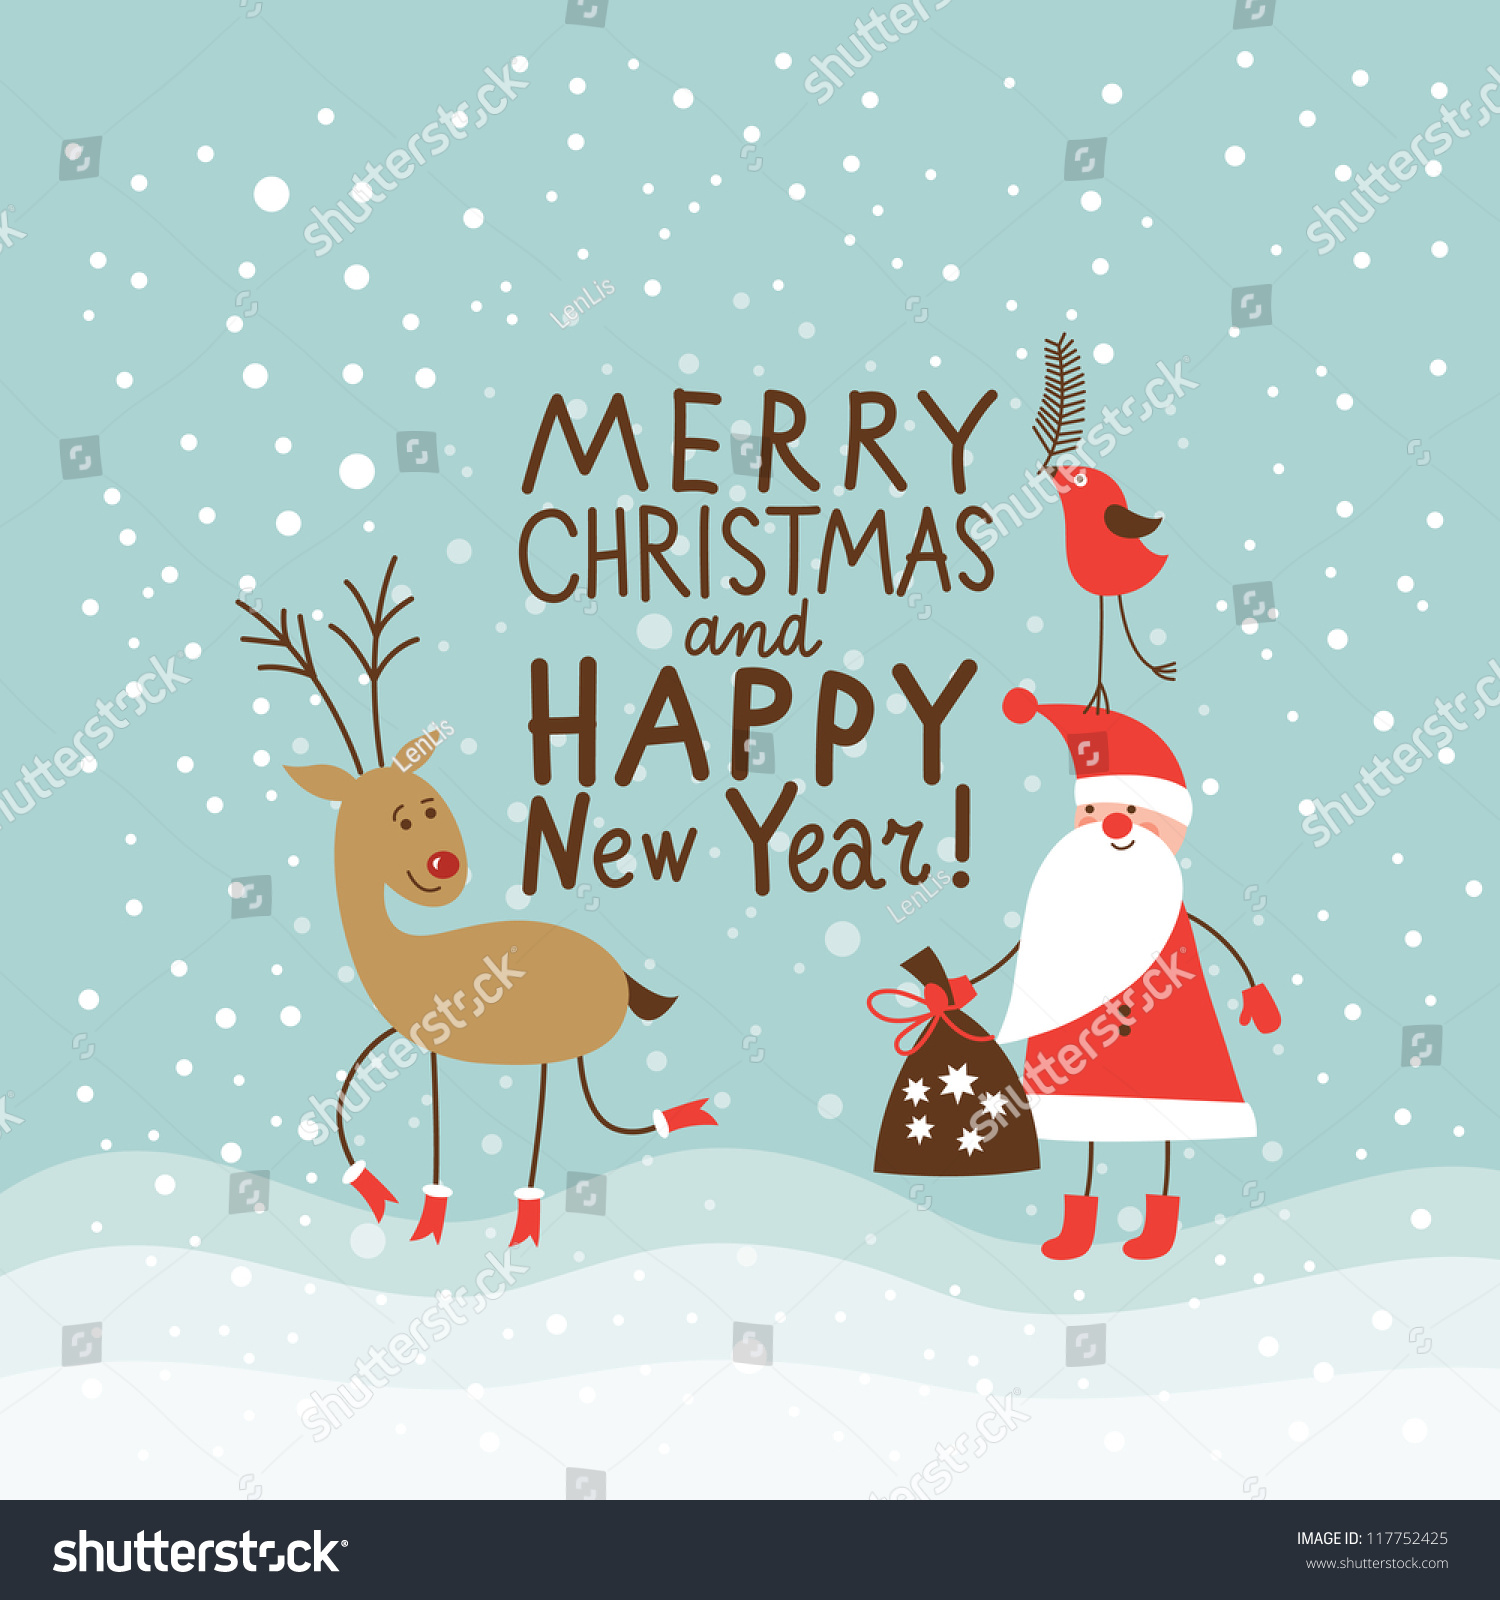 Greeting Christmas And New Year Card Stock Vector ...